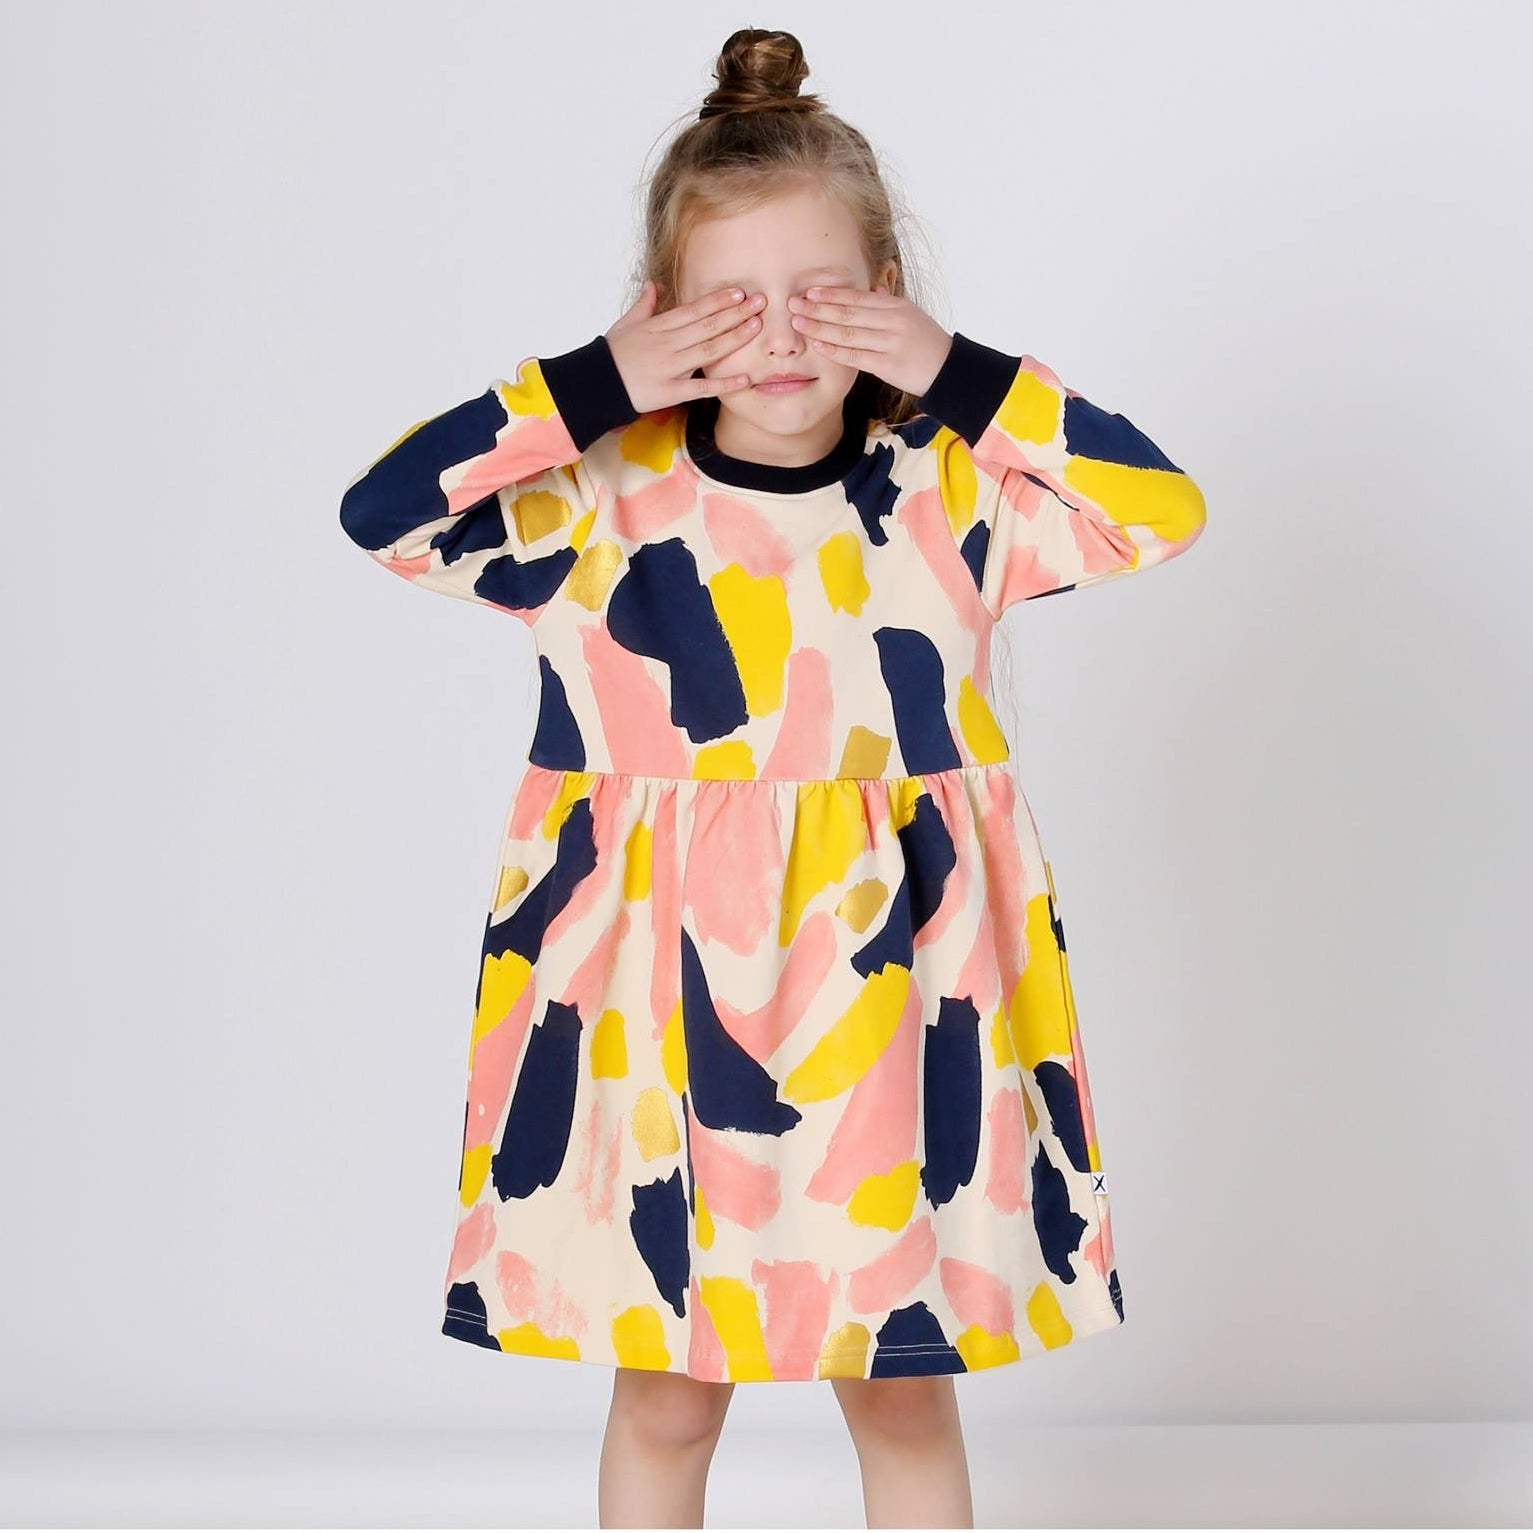 Shop Designer Girls Clothes line Kids Threads and Trends